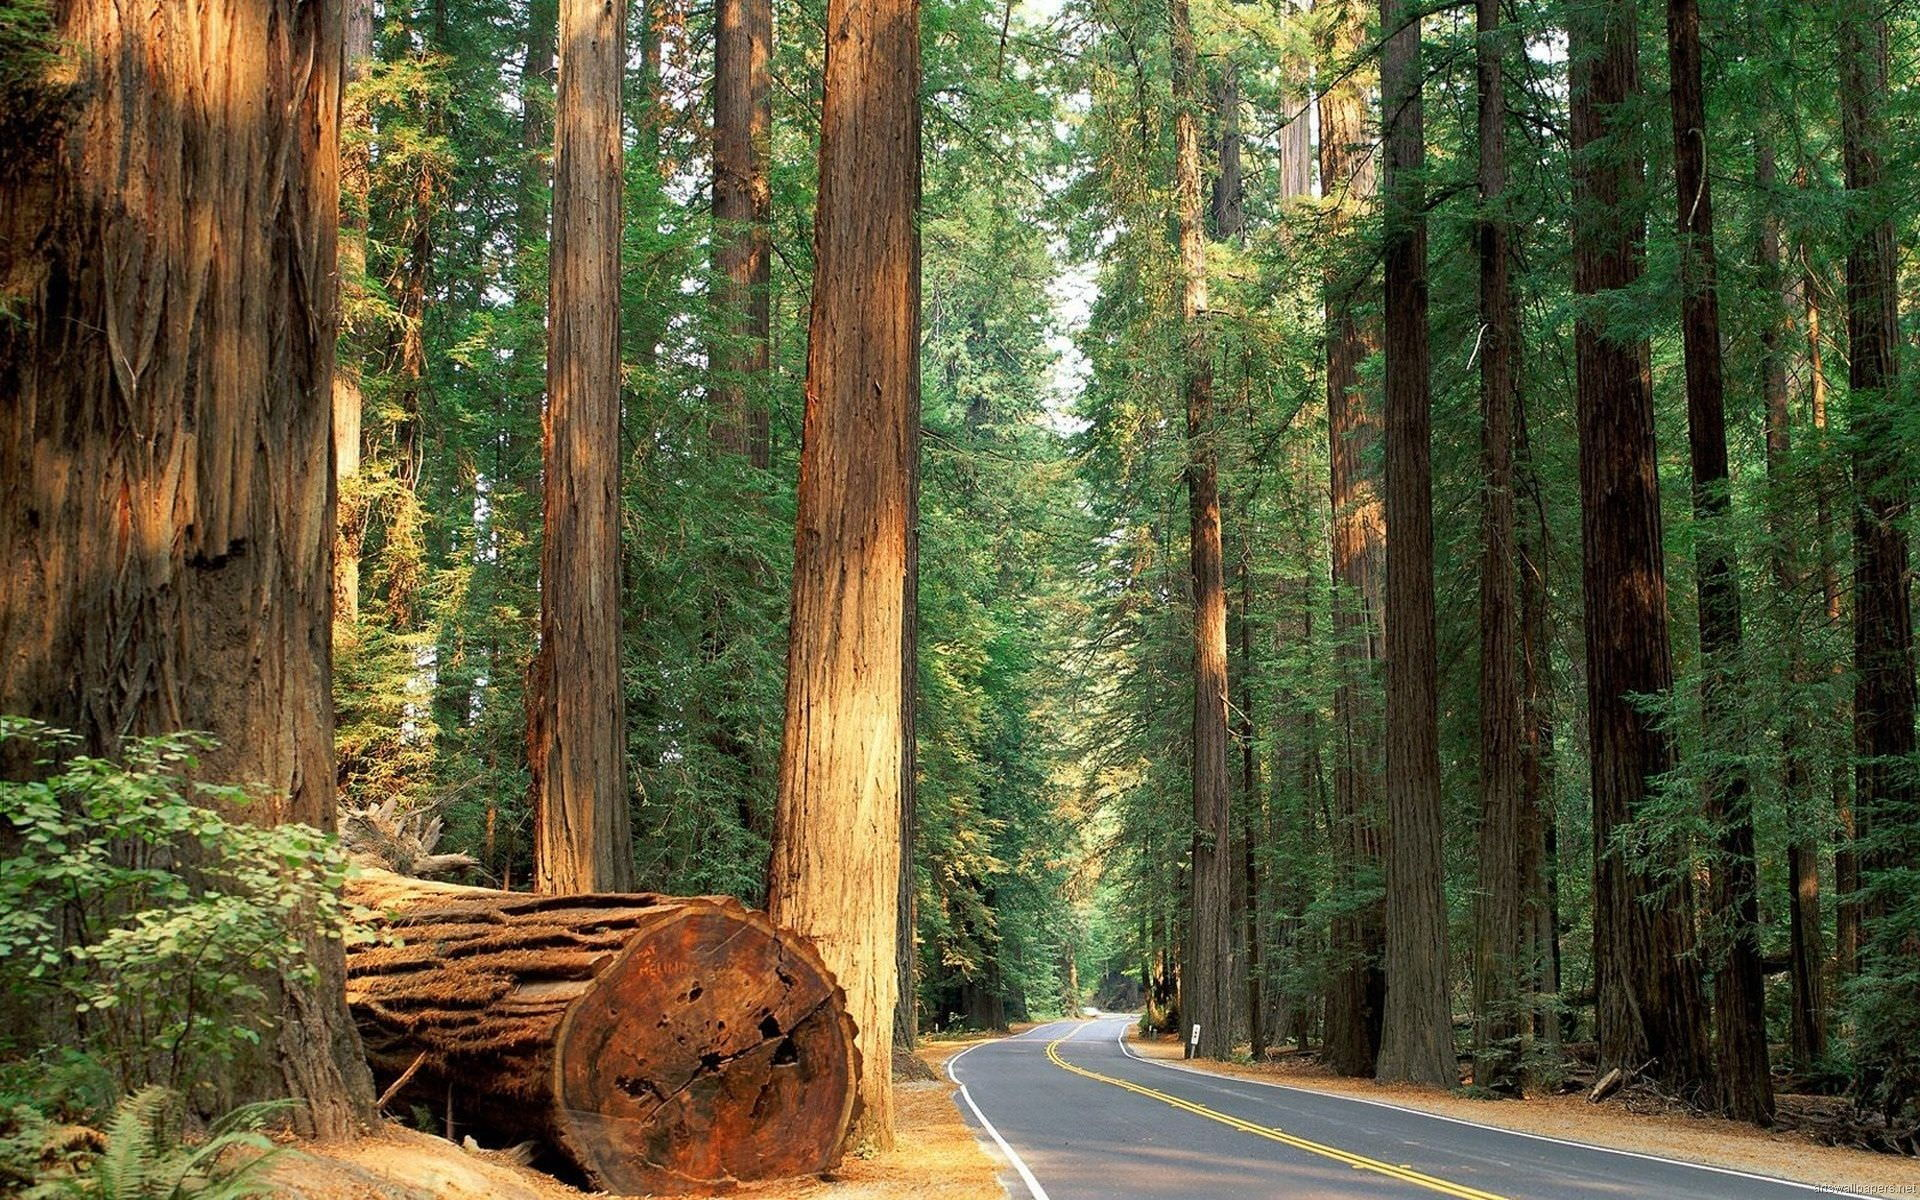 Sequoia National Park Wallpapers In HD Quality   HD Wallpapers Inx 1920x1200